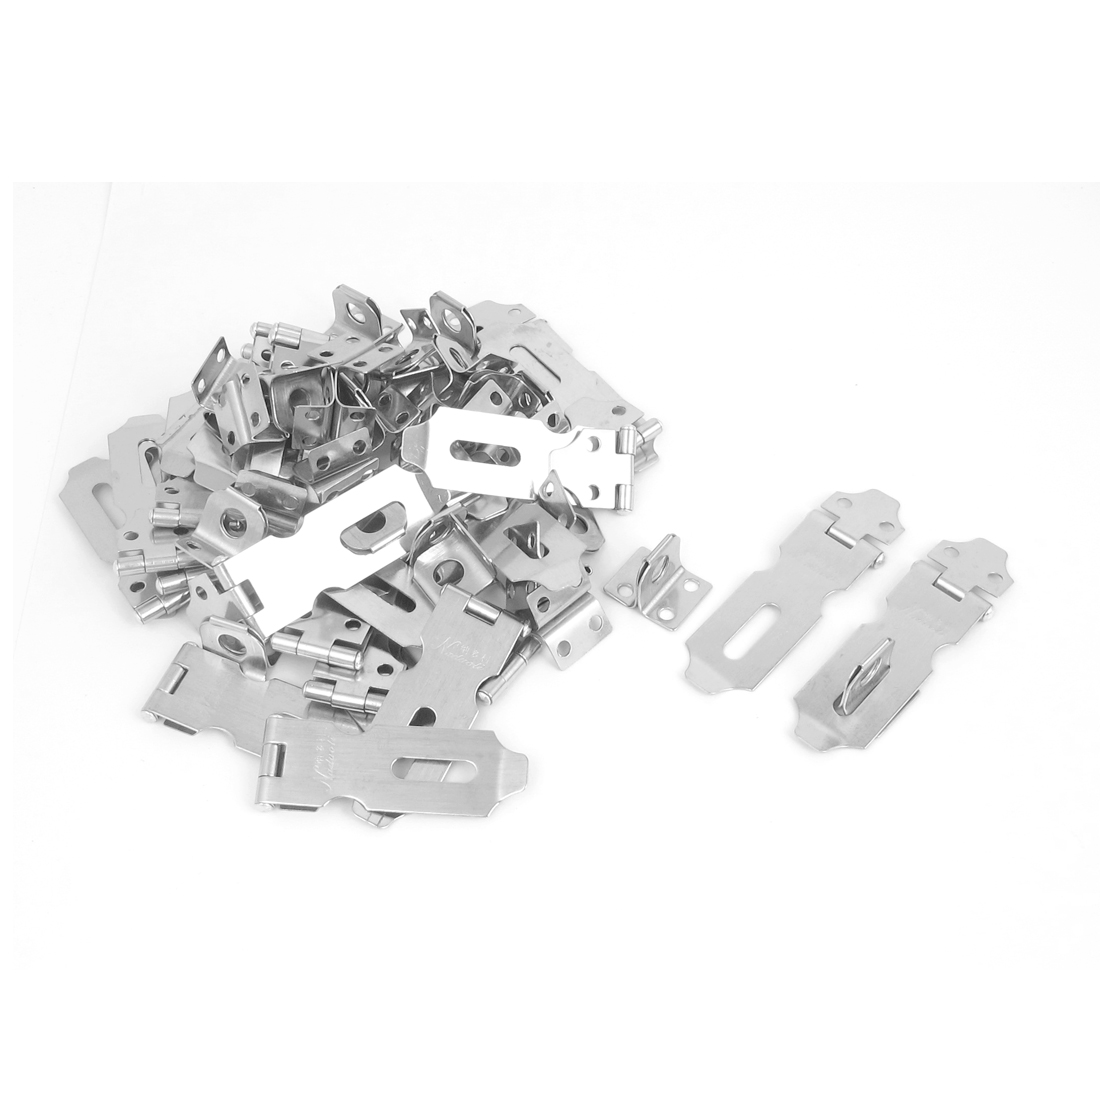 30pcs Silver Tone Metal Safety Gate Cabinet Clasp Lock Locking Padlock Latch Hasp Staple